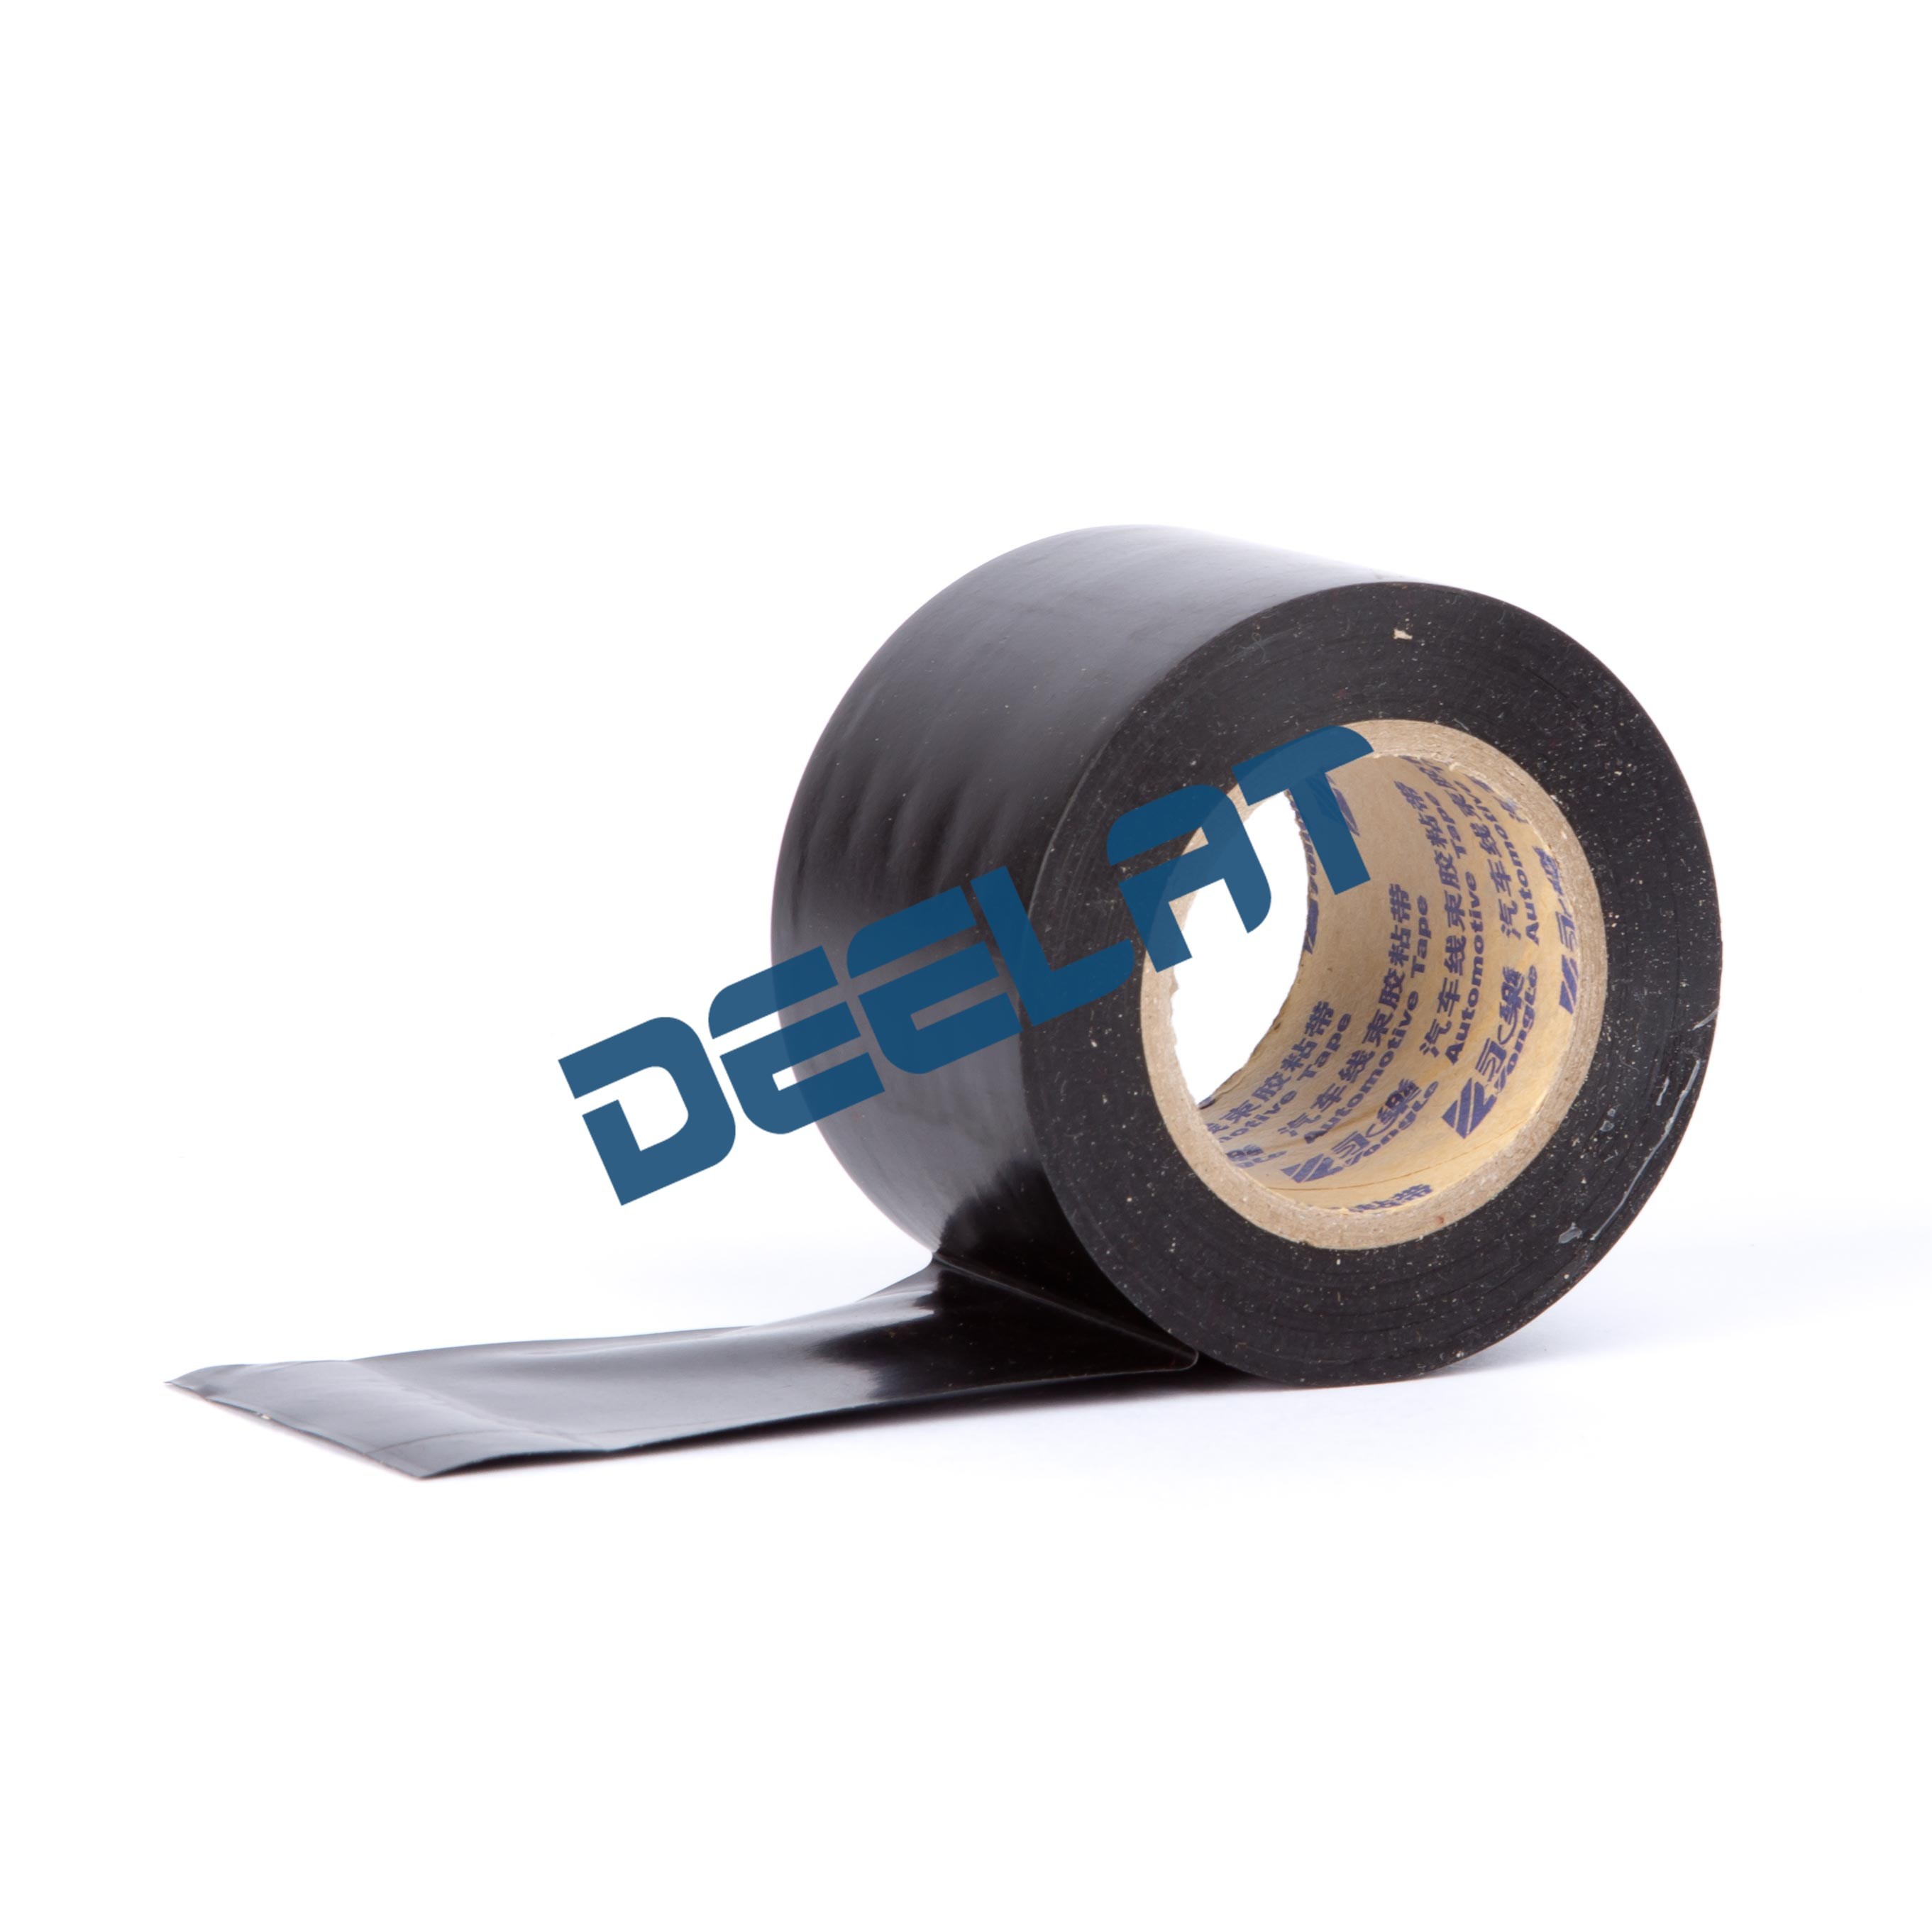 Auto IWre Harness Tape deelat blog automotive wire harness tape uses, types and auto wire harness tape at couponss.co